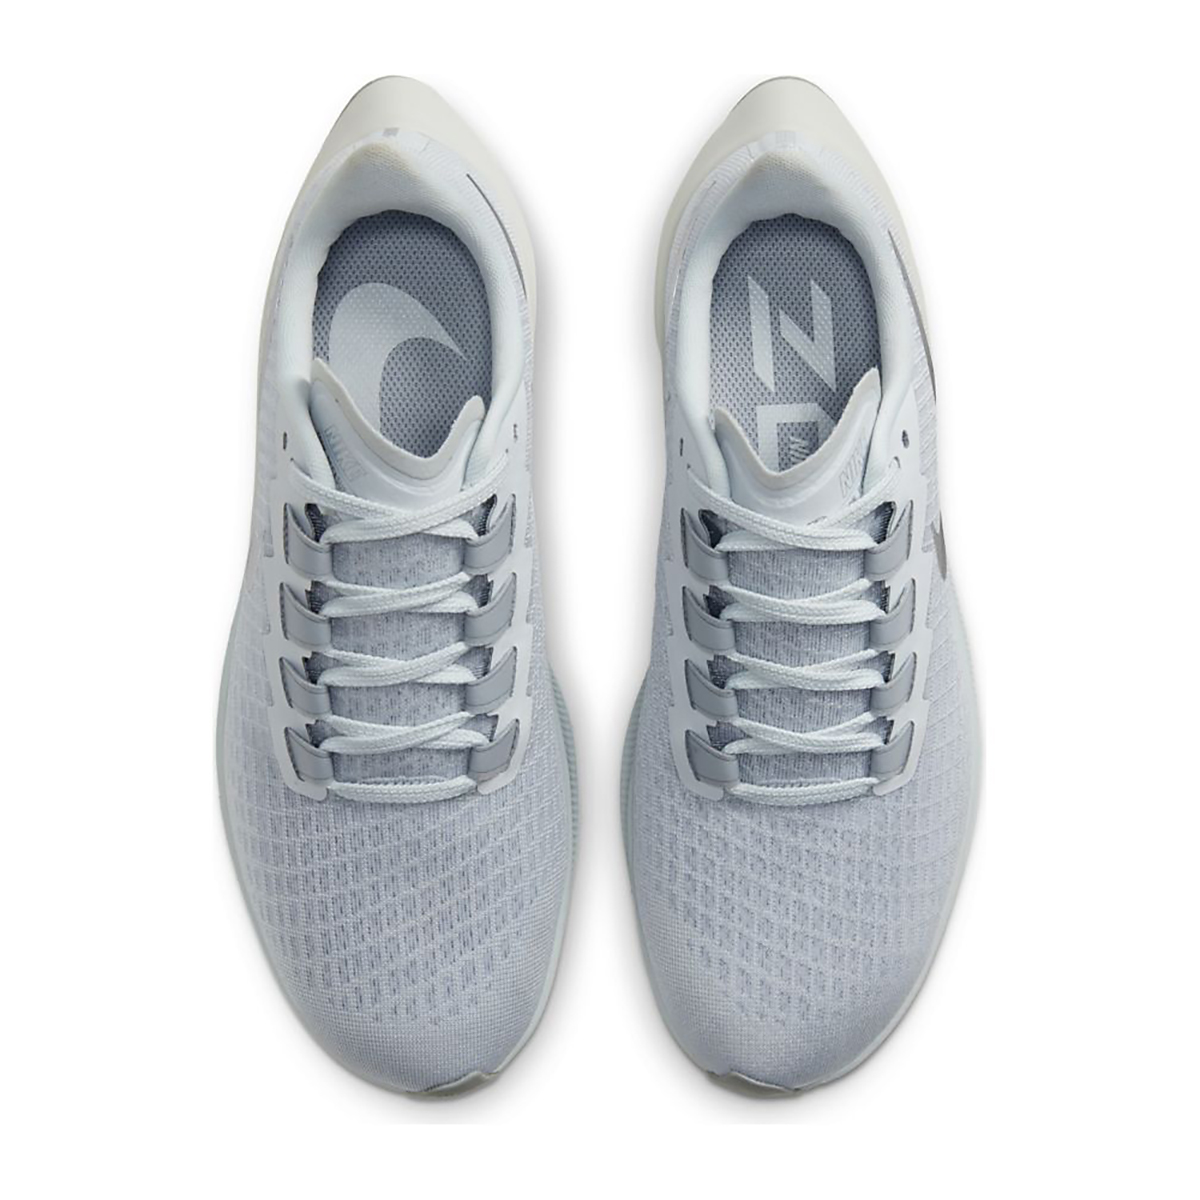 Women's Nike Air Zoom Pegasus 37 Running Shoe - Color: Pure Platinum/Silver/Wolf Grey - Size: 5 - Width: Regular, Pure Platinum/Silver/Wolf Grey, large, image 6